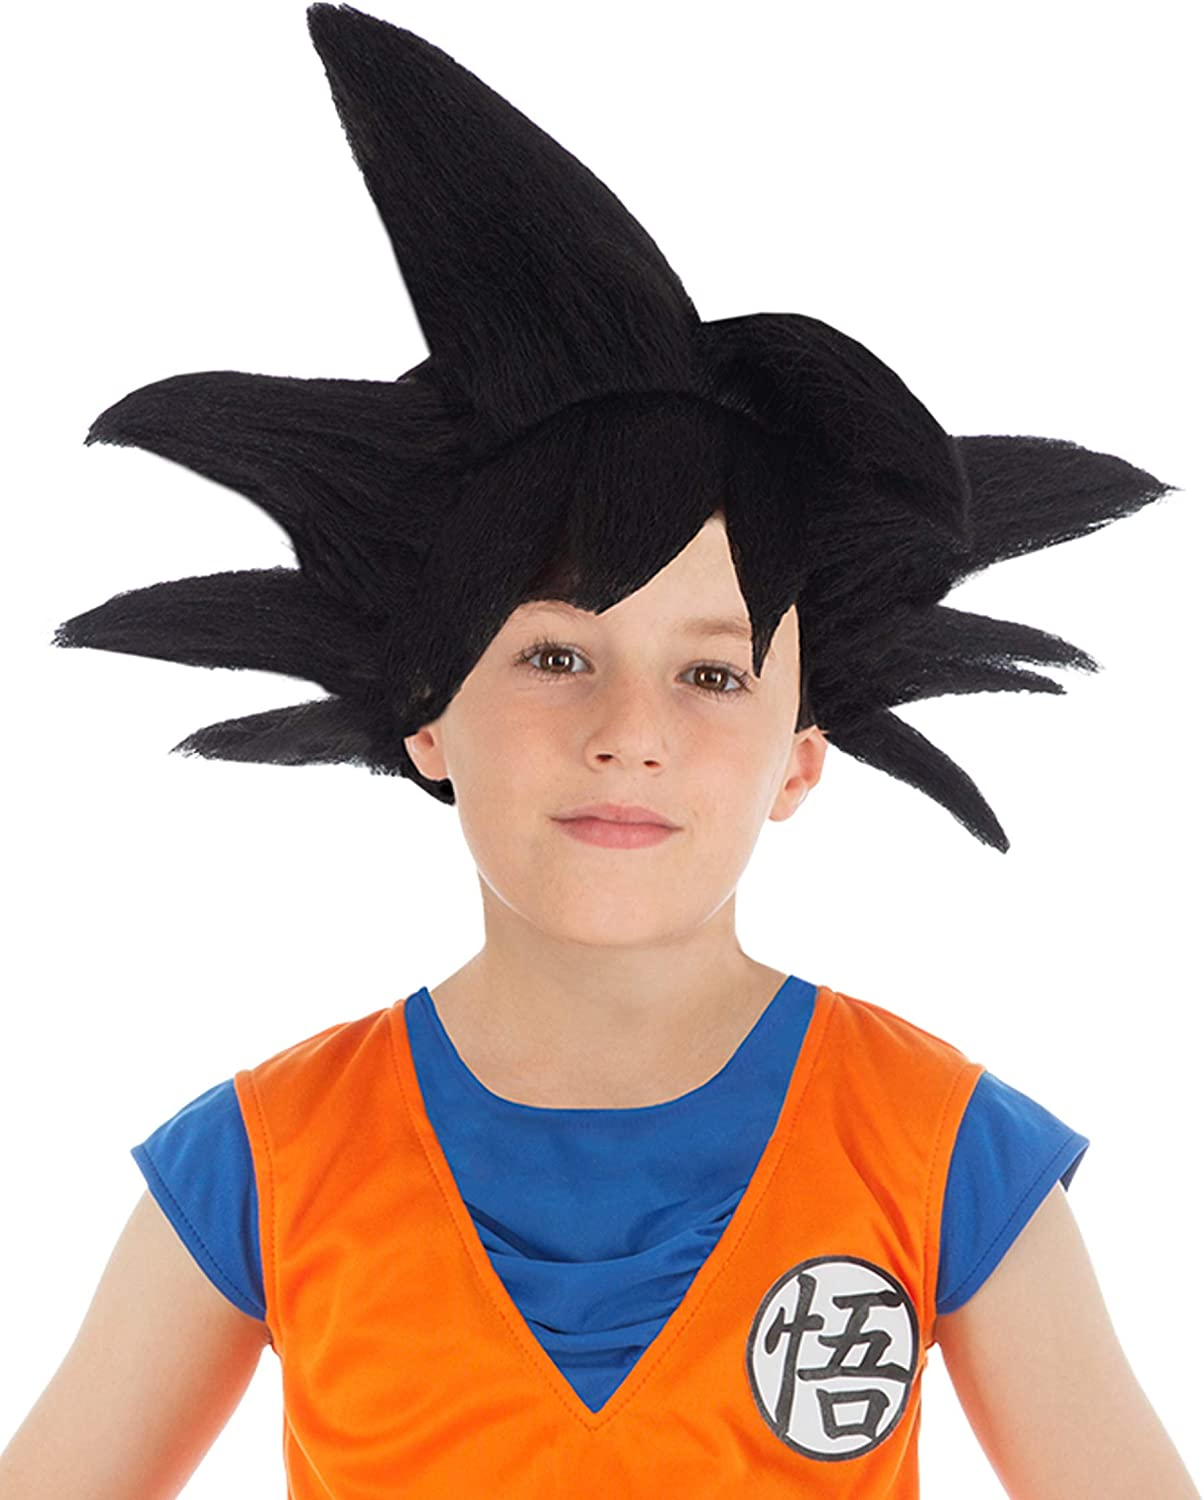 Generique - Peluca Negra Goku Saiyajin Dragon Ball Z niño: Amazon ...